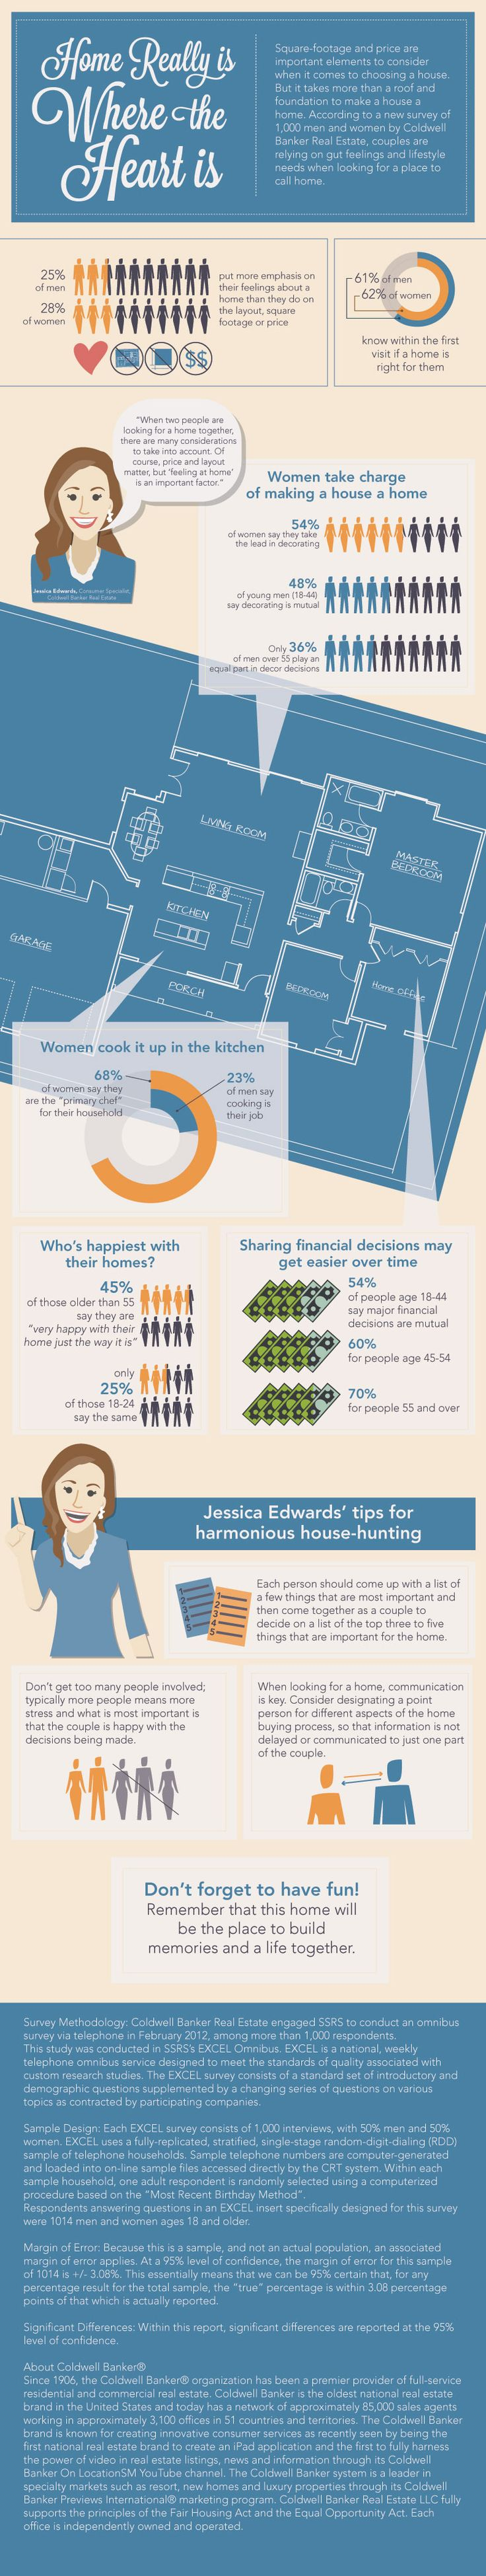 97 best Fun Infographics! images on Pinterest | Infographic ...